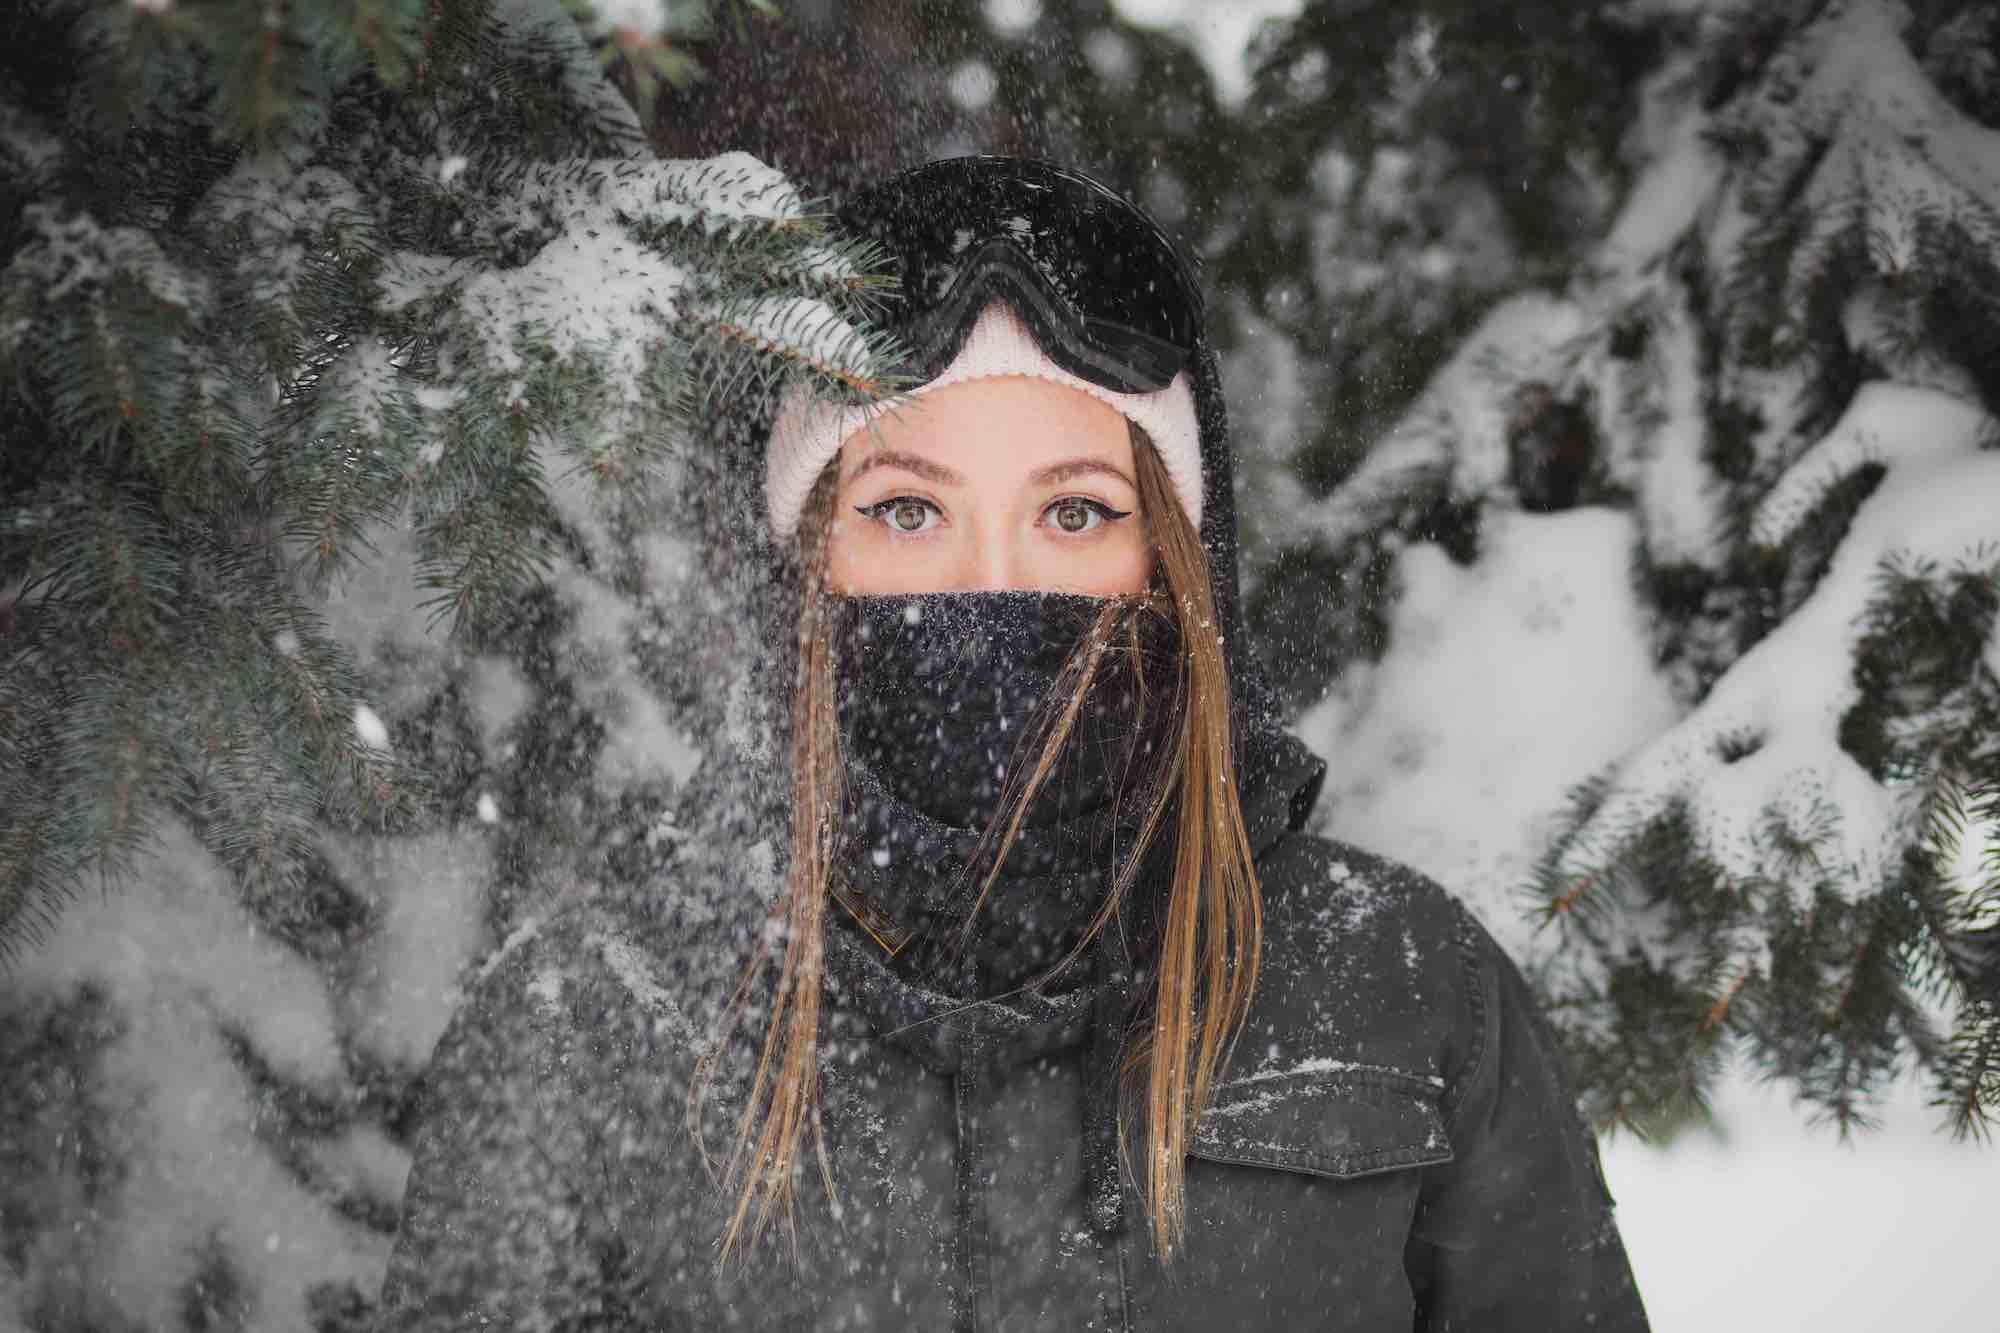 Colorado Skin Care Products for Winter: What's Saving My Skin Right Now | Denver Dweller